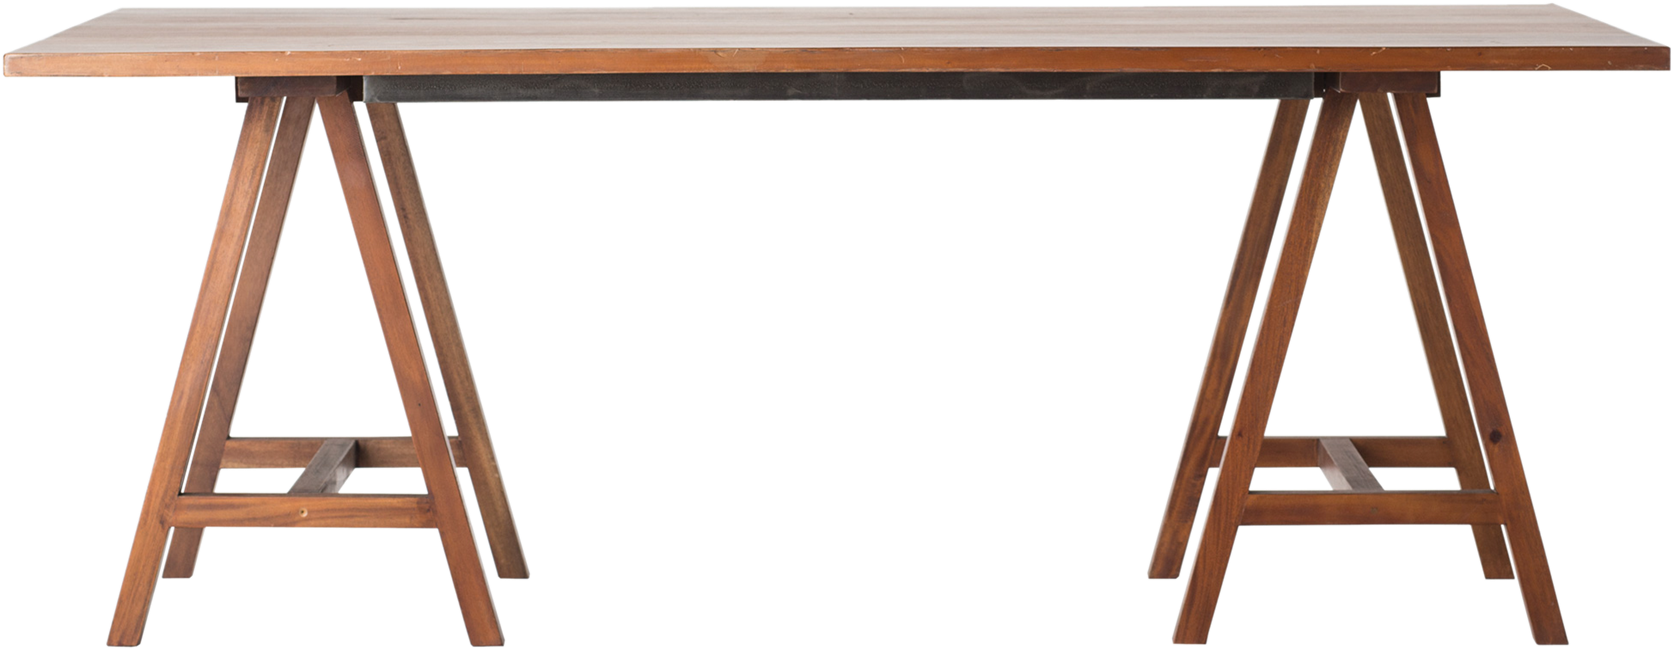 Carpenters Dining Table - 200 x 110cm Rect